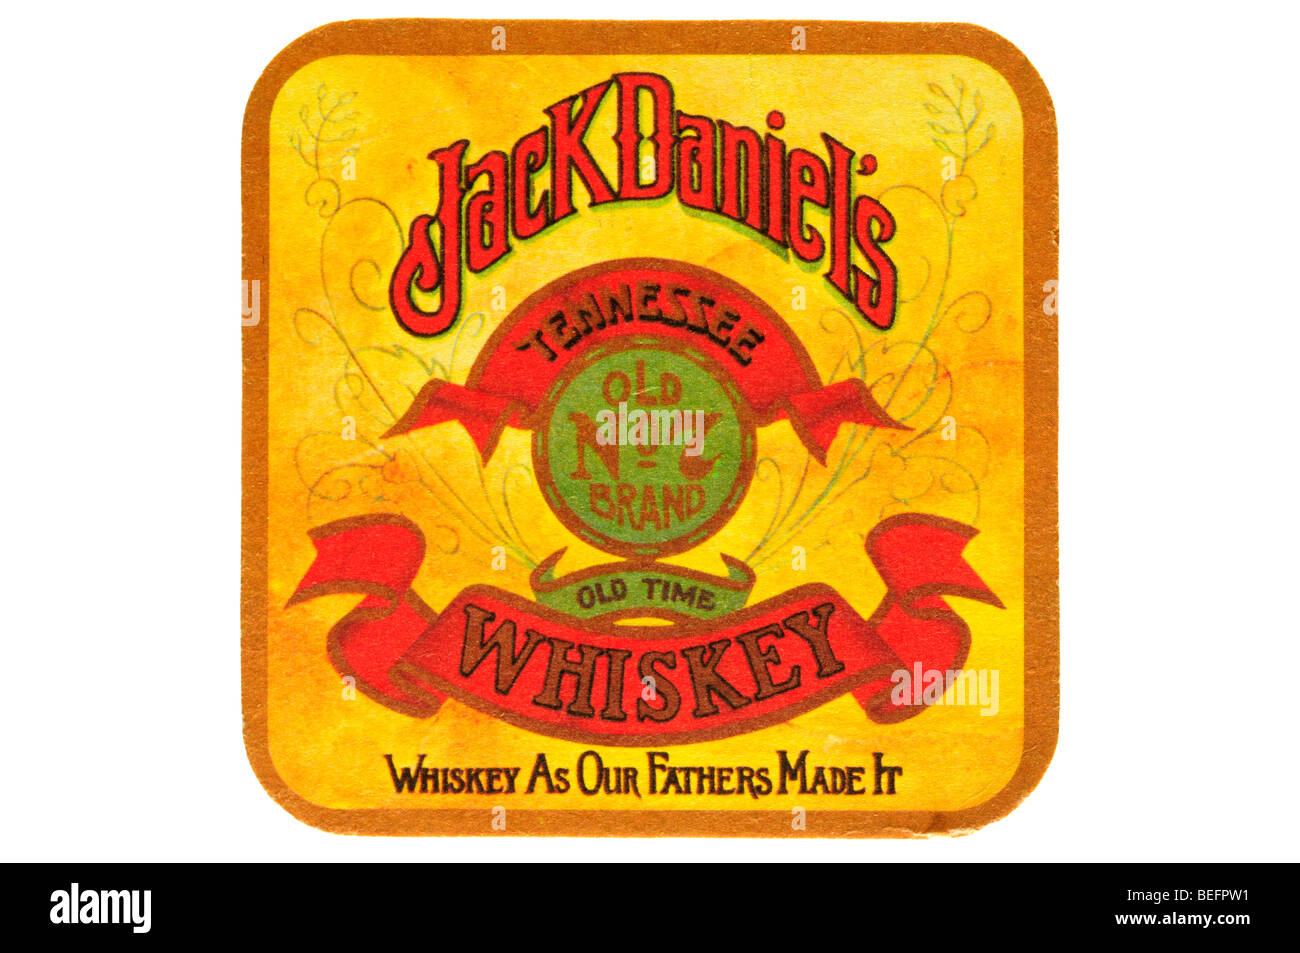 jack daniels old no 7 brand old time tennessee whiskey whiskey as our fathers made it - Stock Image